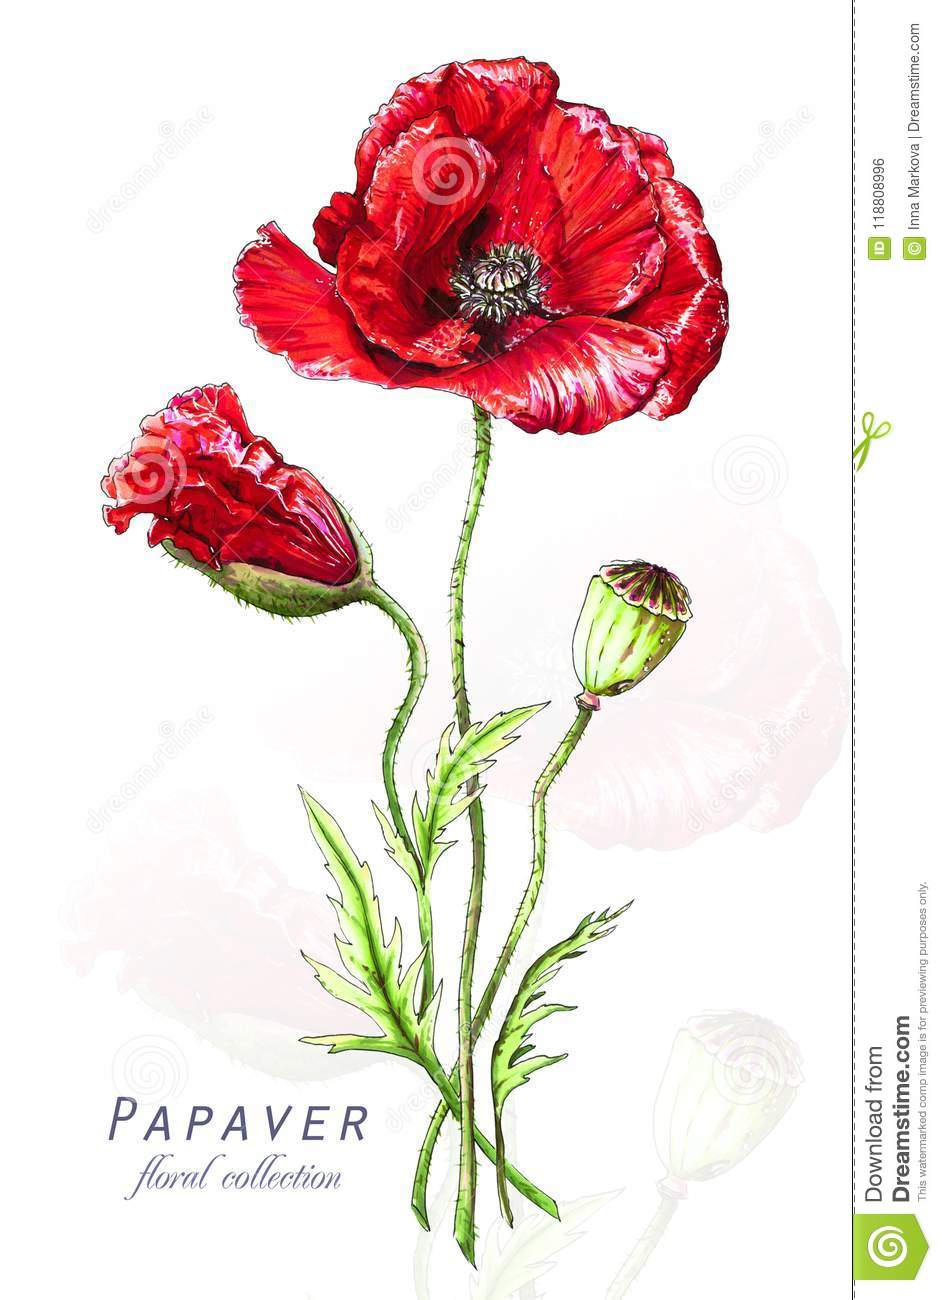 f8fa6c81f0c65 Botanical Illustration. Postcard Card With Blossoming Red Poppy ...